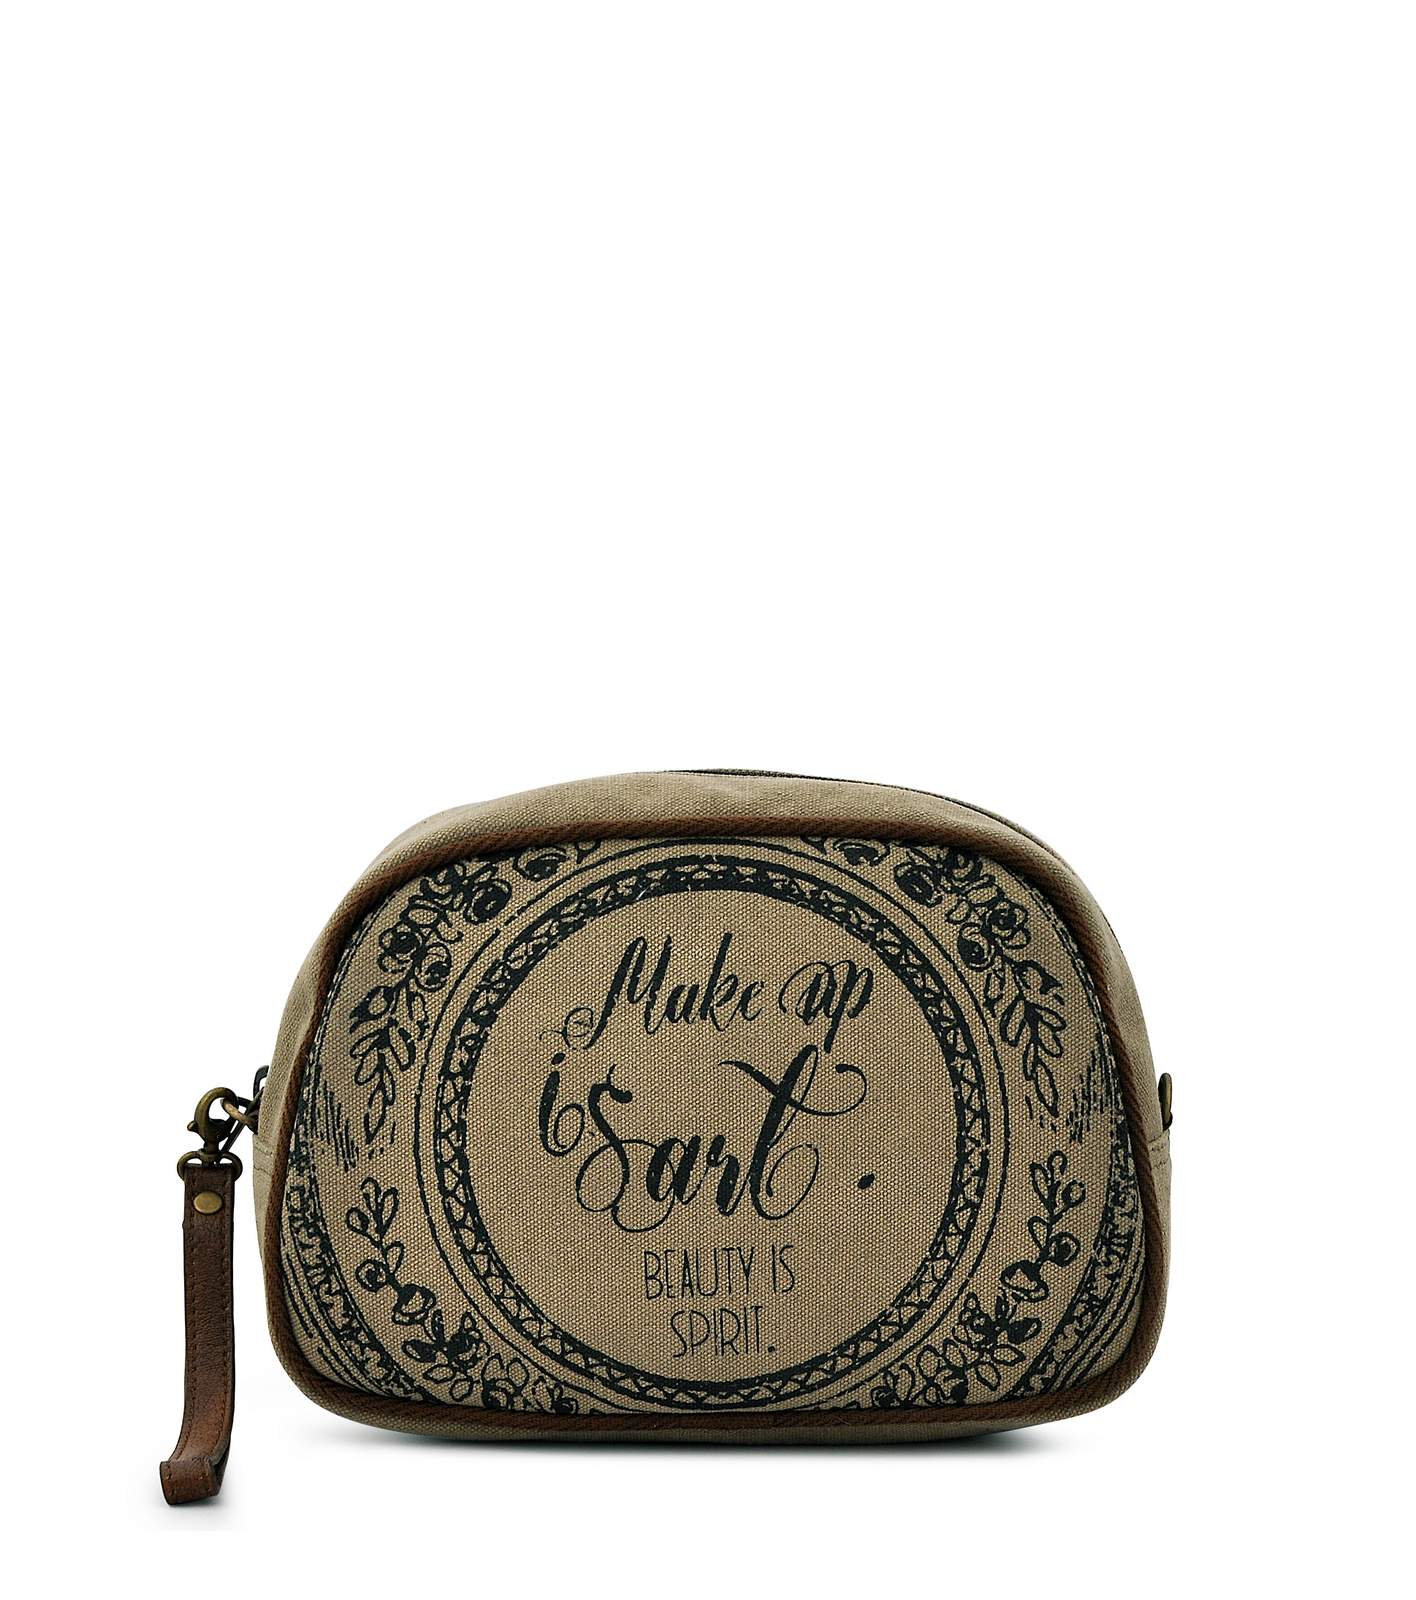 Make Up & Cosmetic Bag DLM18-0006